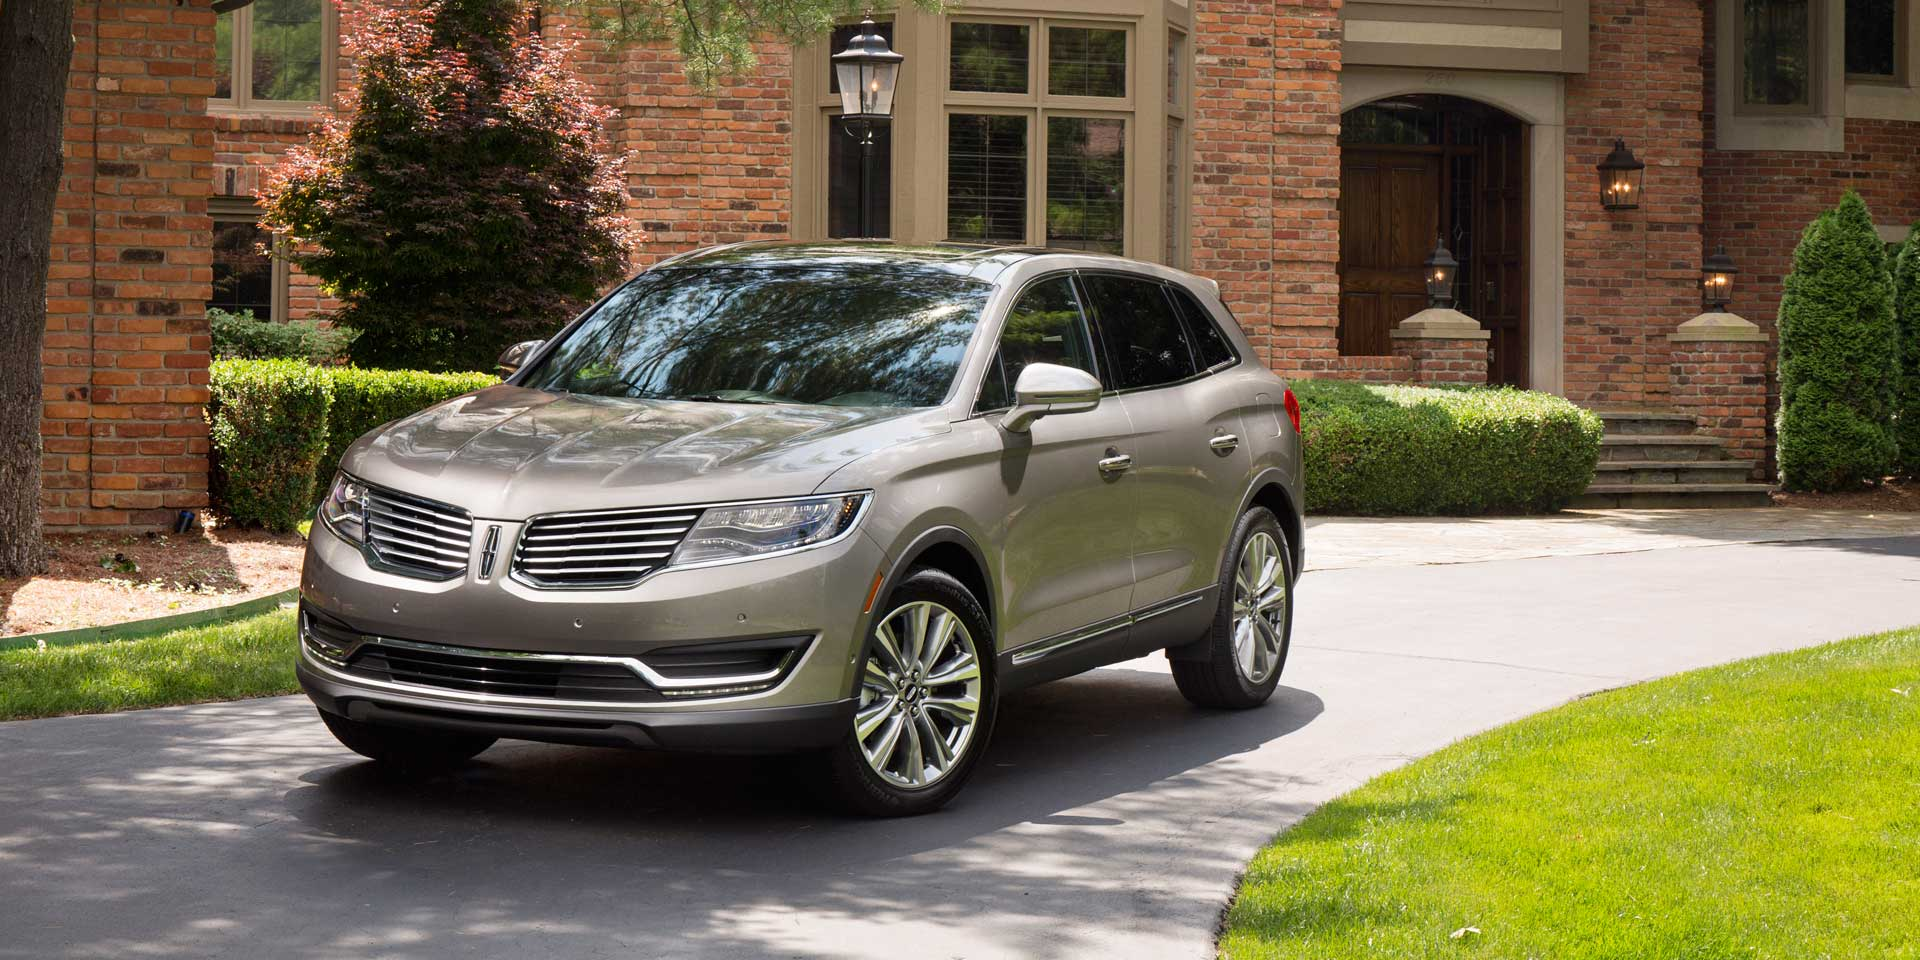 2017 - Lincoln - MKX - Vehicles on Display | Chicago Auto Show